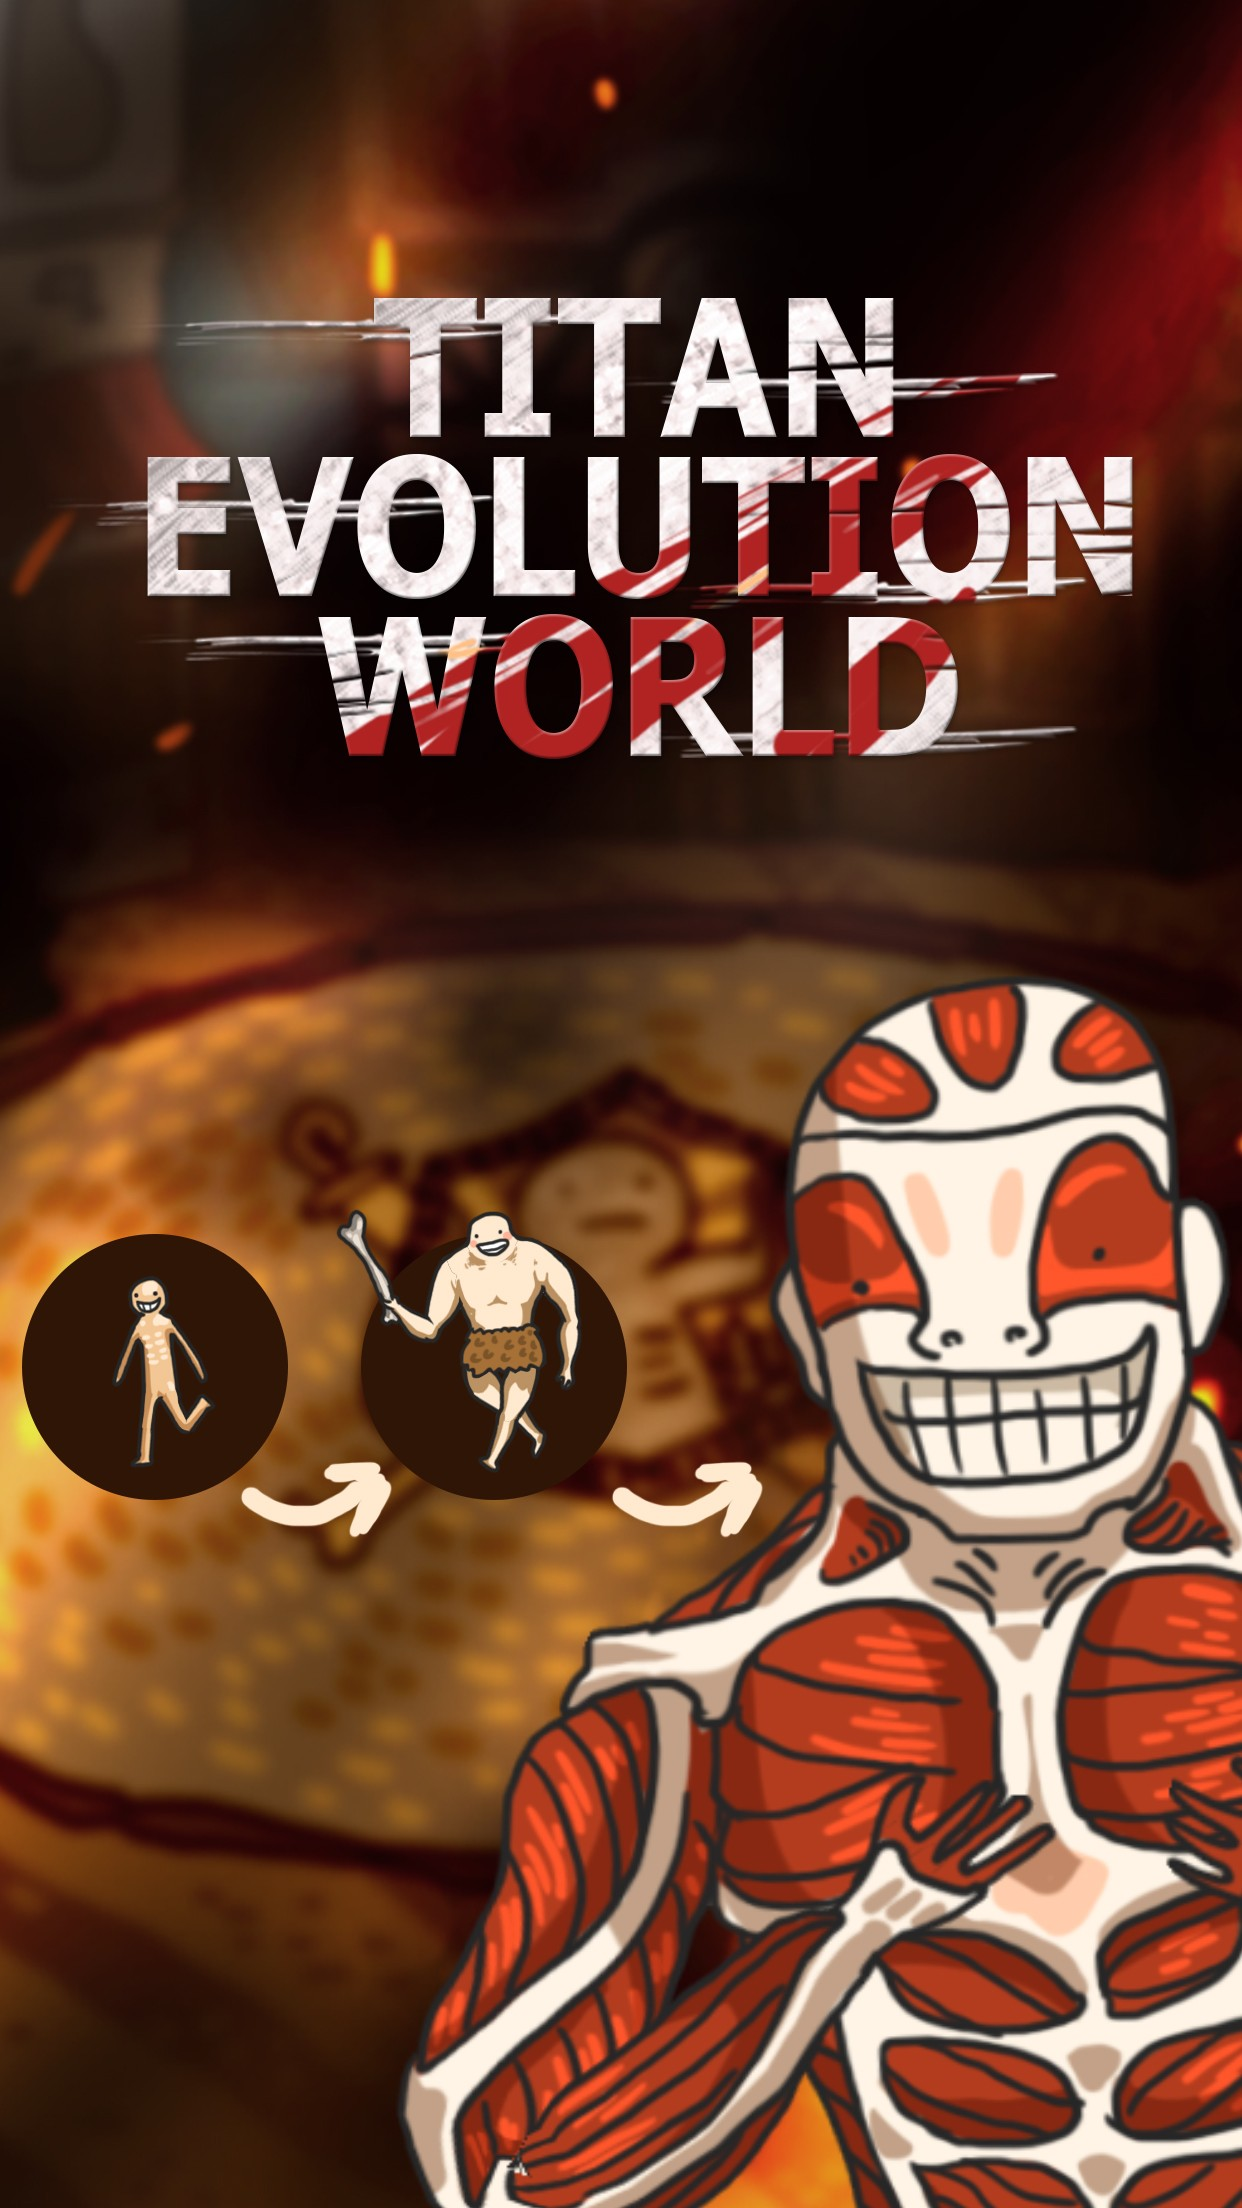 Titan Evolution World